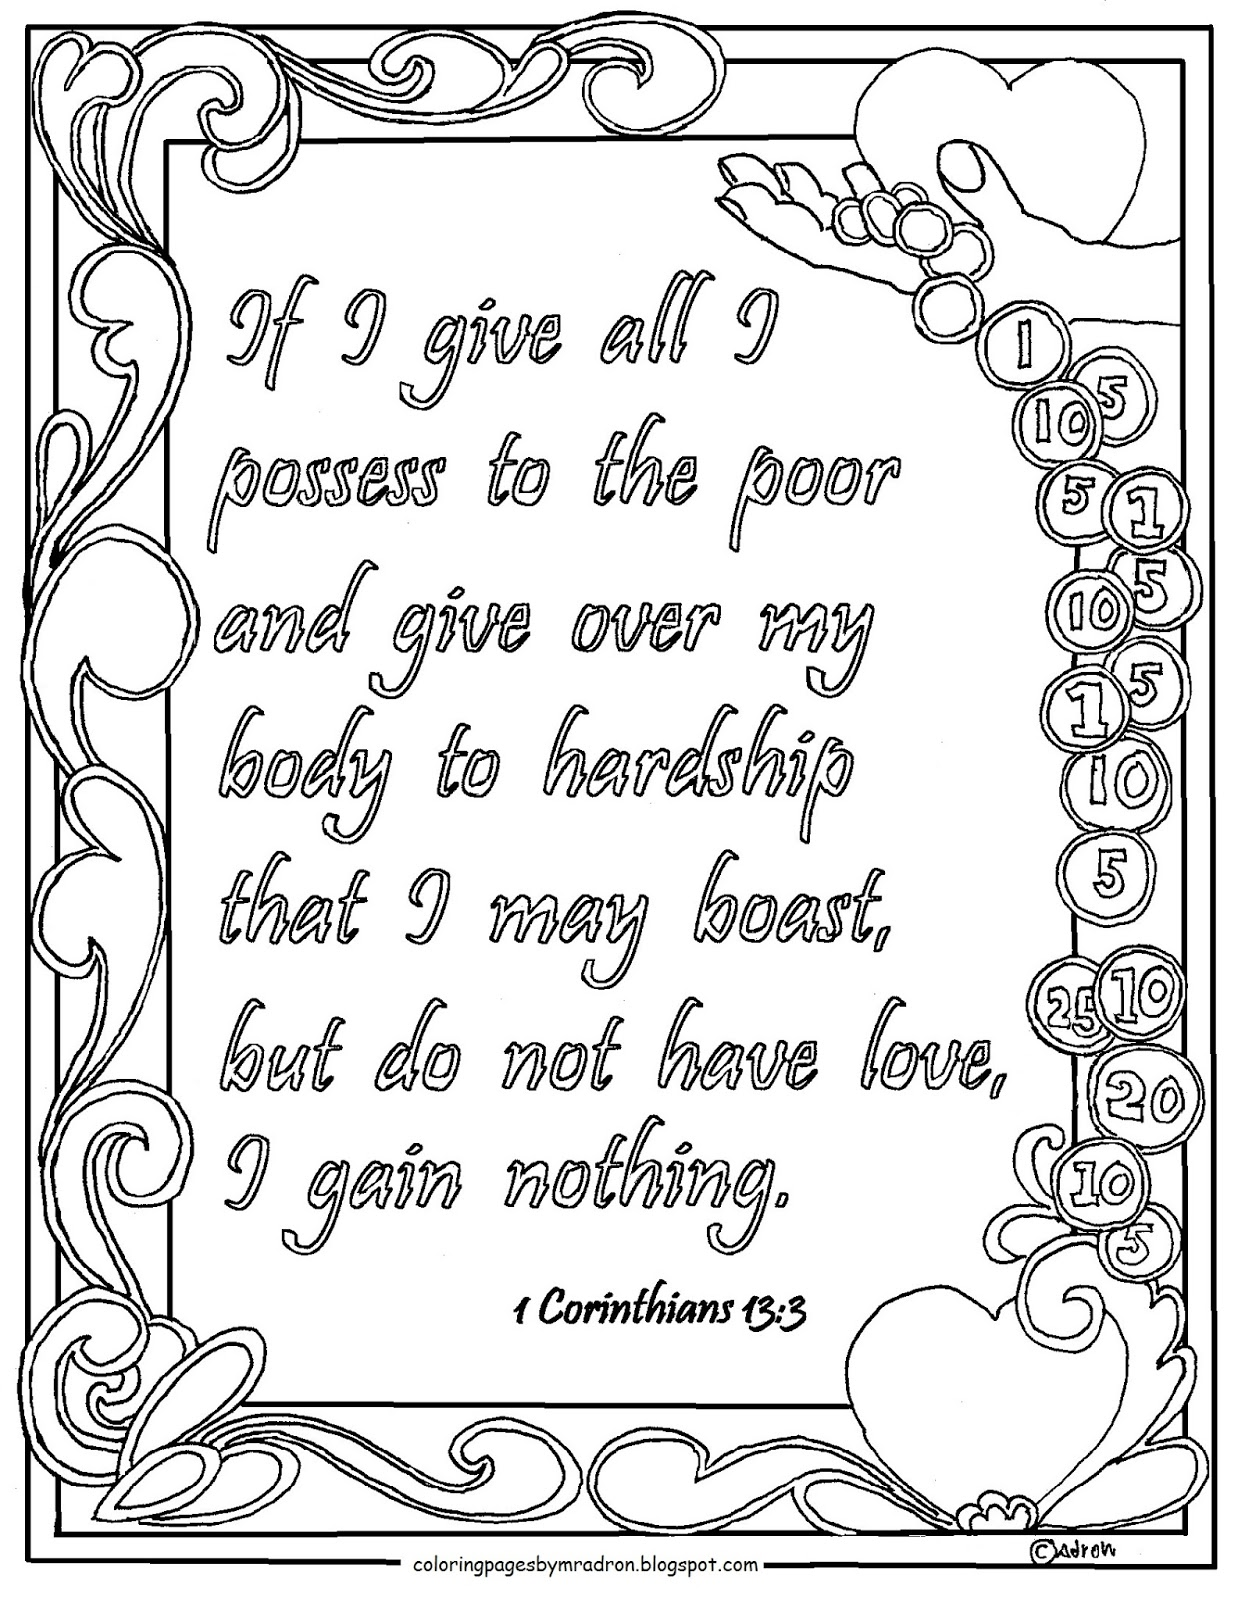 This is a photo of Smart 1 Corinthians 13 Coloring Page